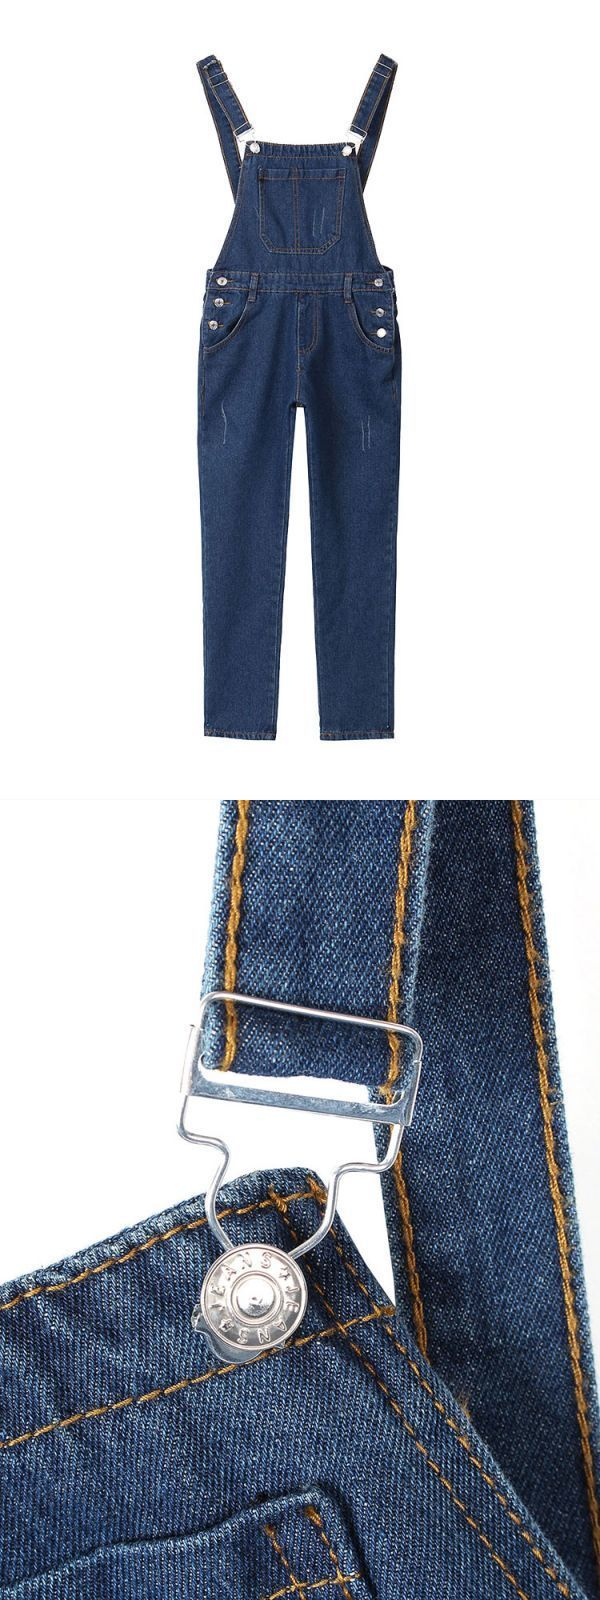 Women dark blue washed denim rompers casual overalls jeans jumpsuits and playsuits cheap #jumpsuits #amp; #playsuits #jumpsuits #and #playsuits #new #look #jumpsuits #and #playsuits #sale #jumpsuits #y #playsuits